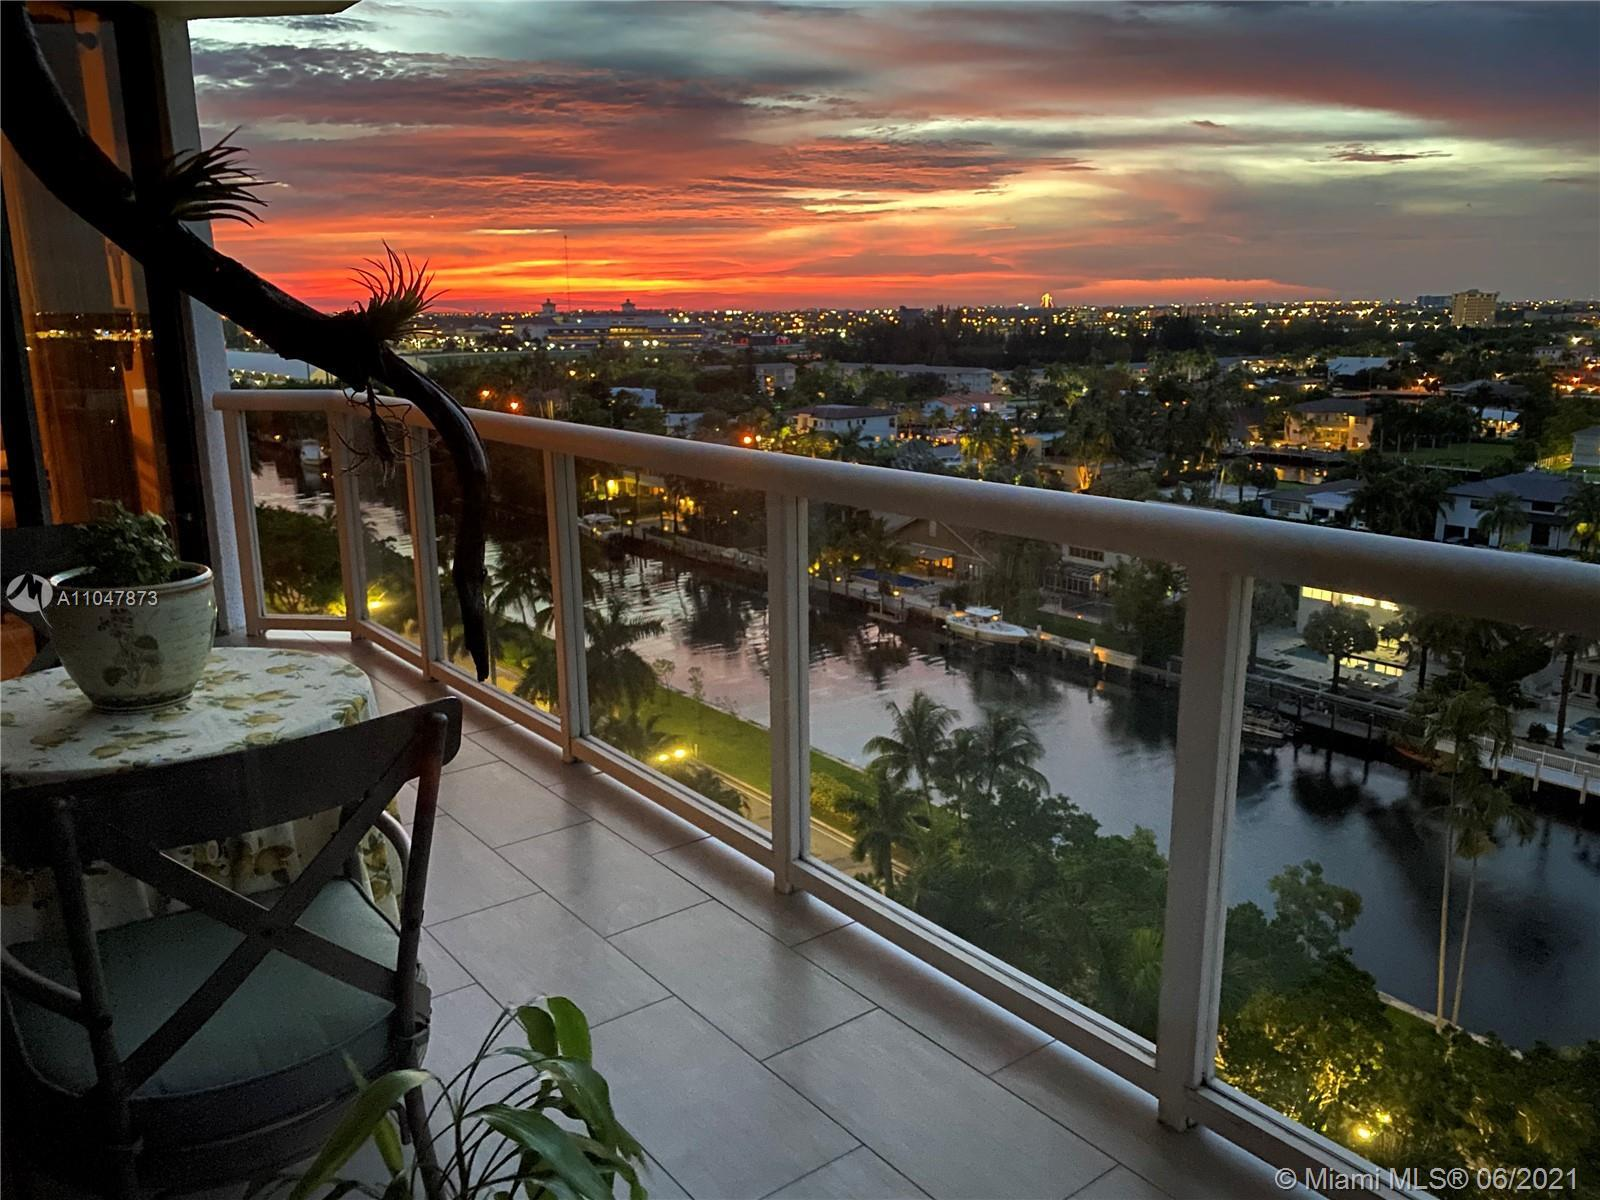 BEAUTIFUL VIEW FROM SUNRISE TO SUNSET. NE VIEWS OF CANAL, INTRACOASTAL AND OCEAN WITH  NW VIEWS OF G